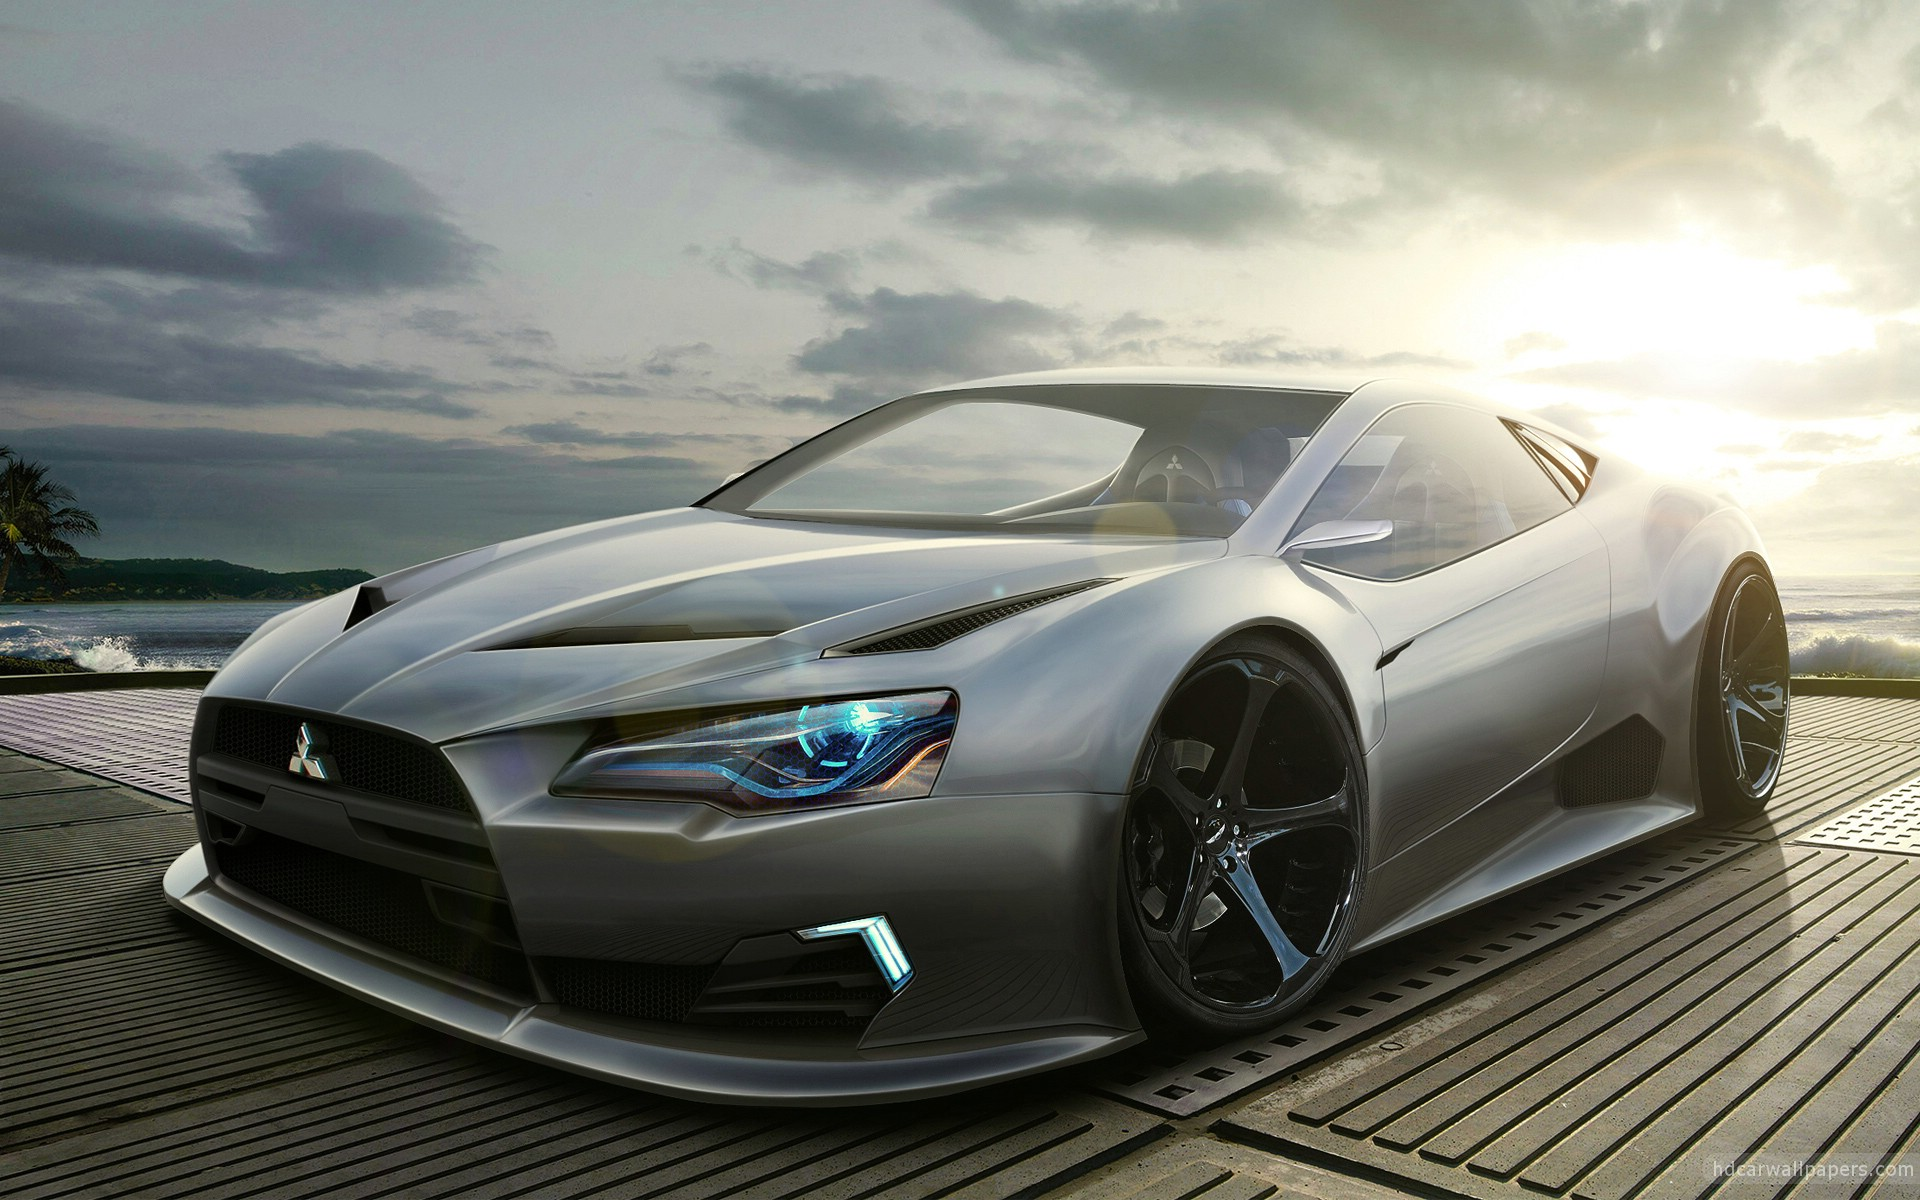 Captivating Hd Car. Mitsubishi Concept Wallpaper ...